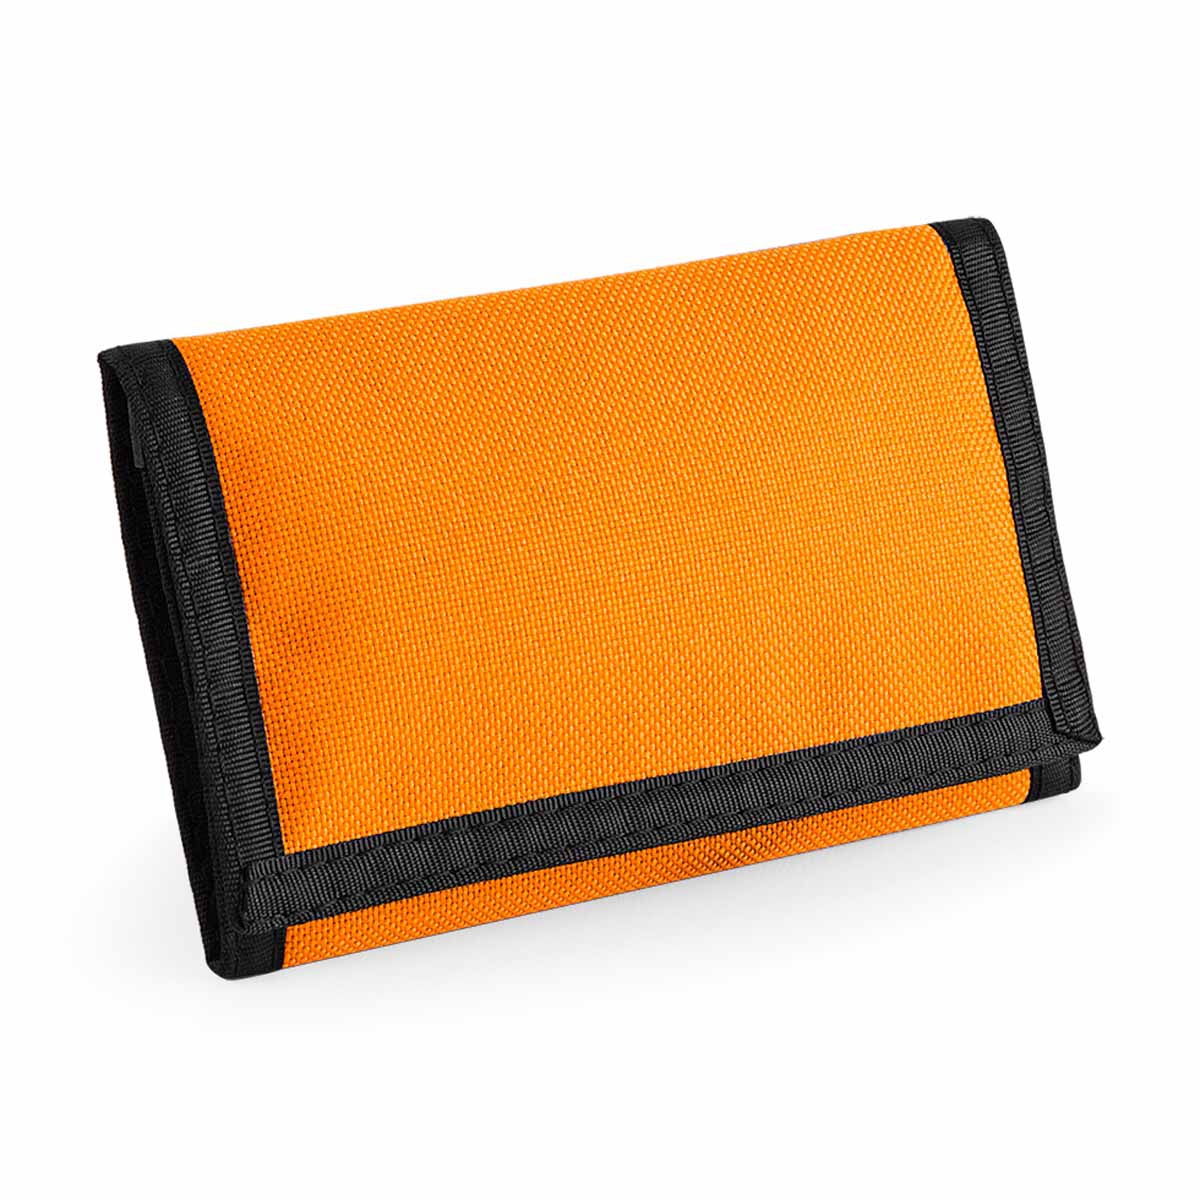 Porte-monnaie - Portefeuille - BG40 - orange